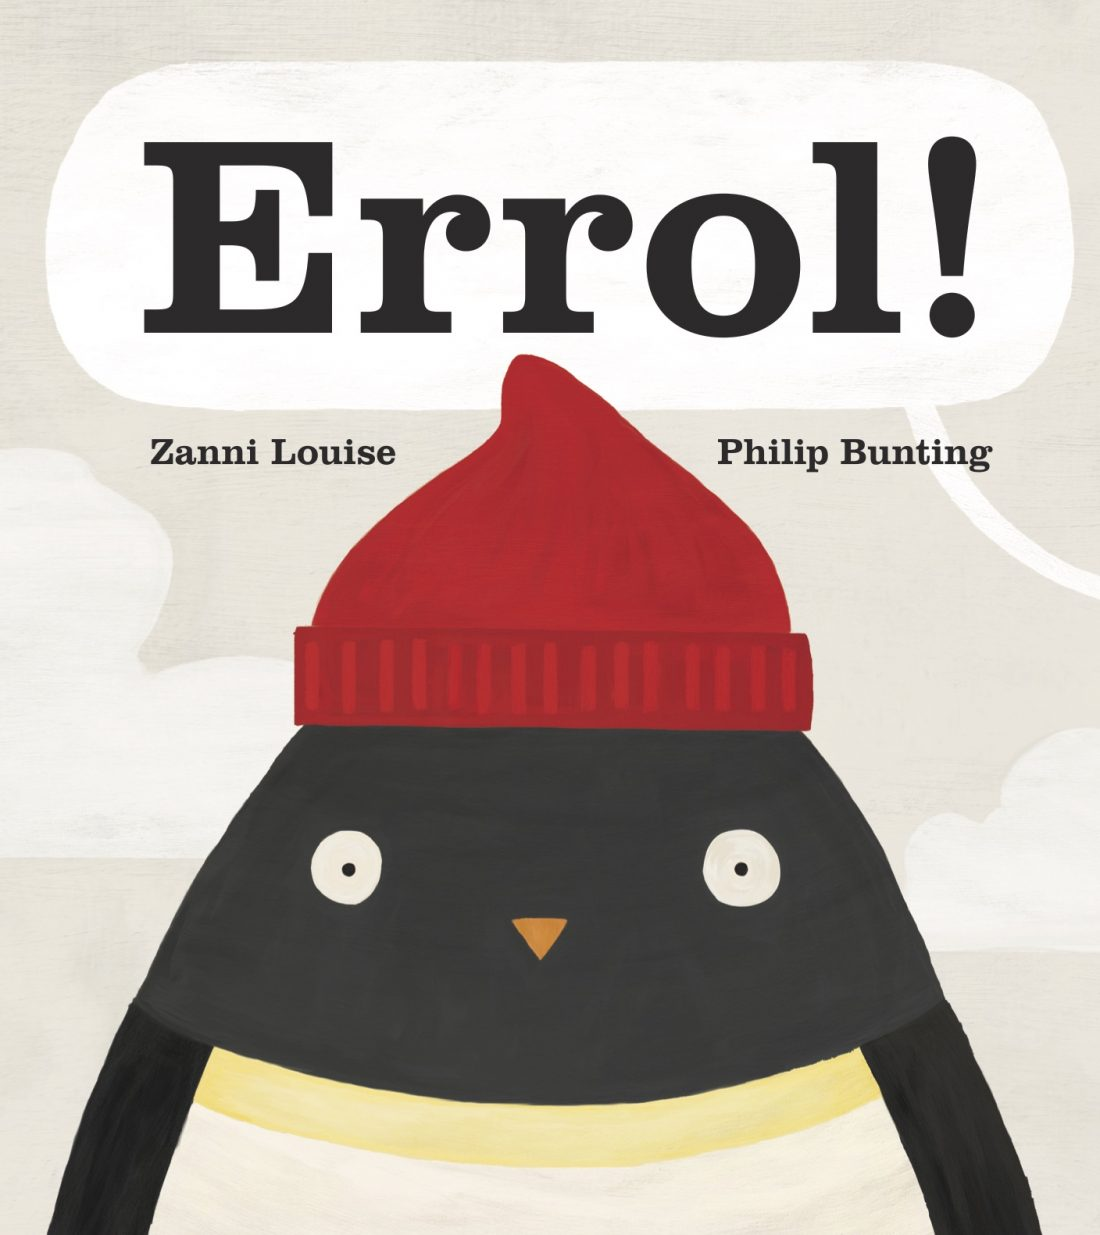 Errol! Picture book with Philip Bunting